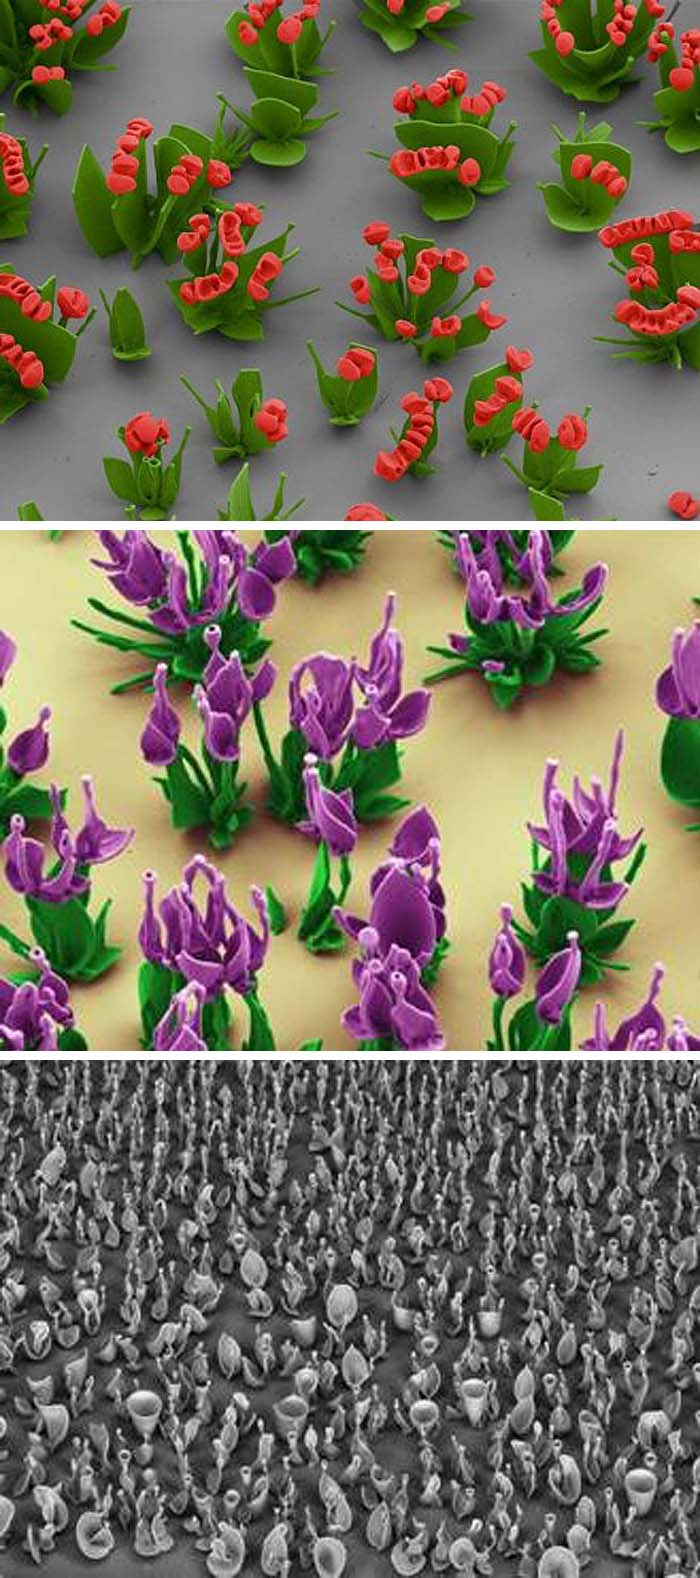 Microscopic Flowers made of chemical, Wim Noorduin, Harvard, cool manipulated design in science